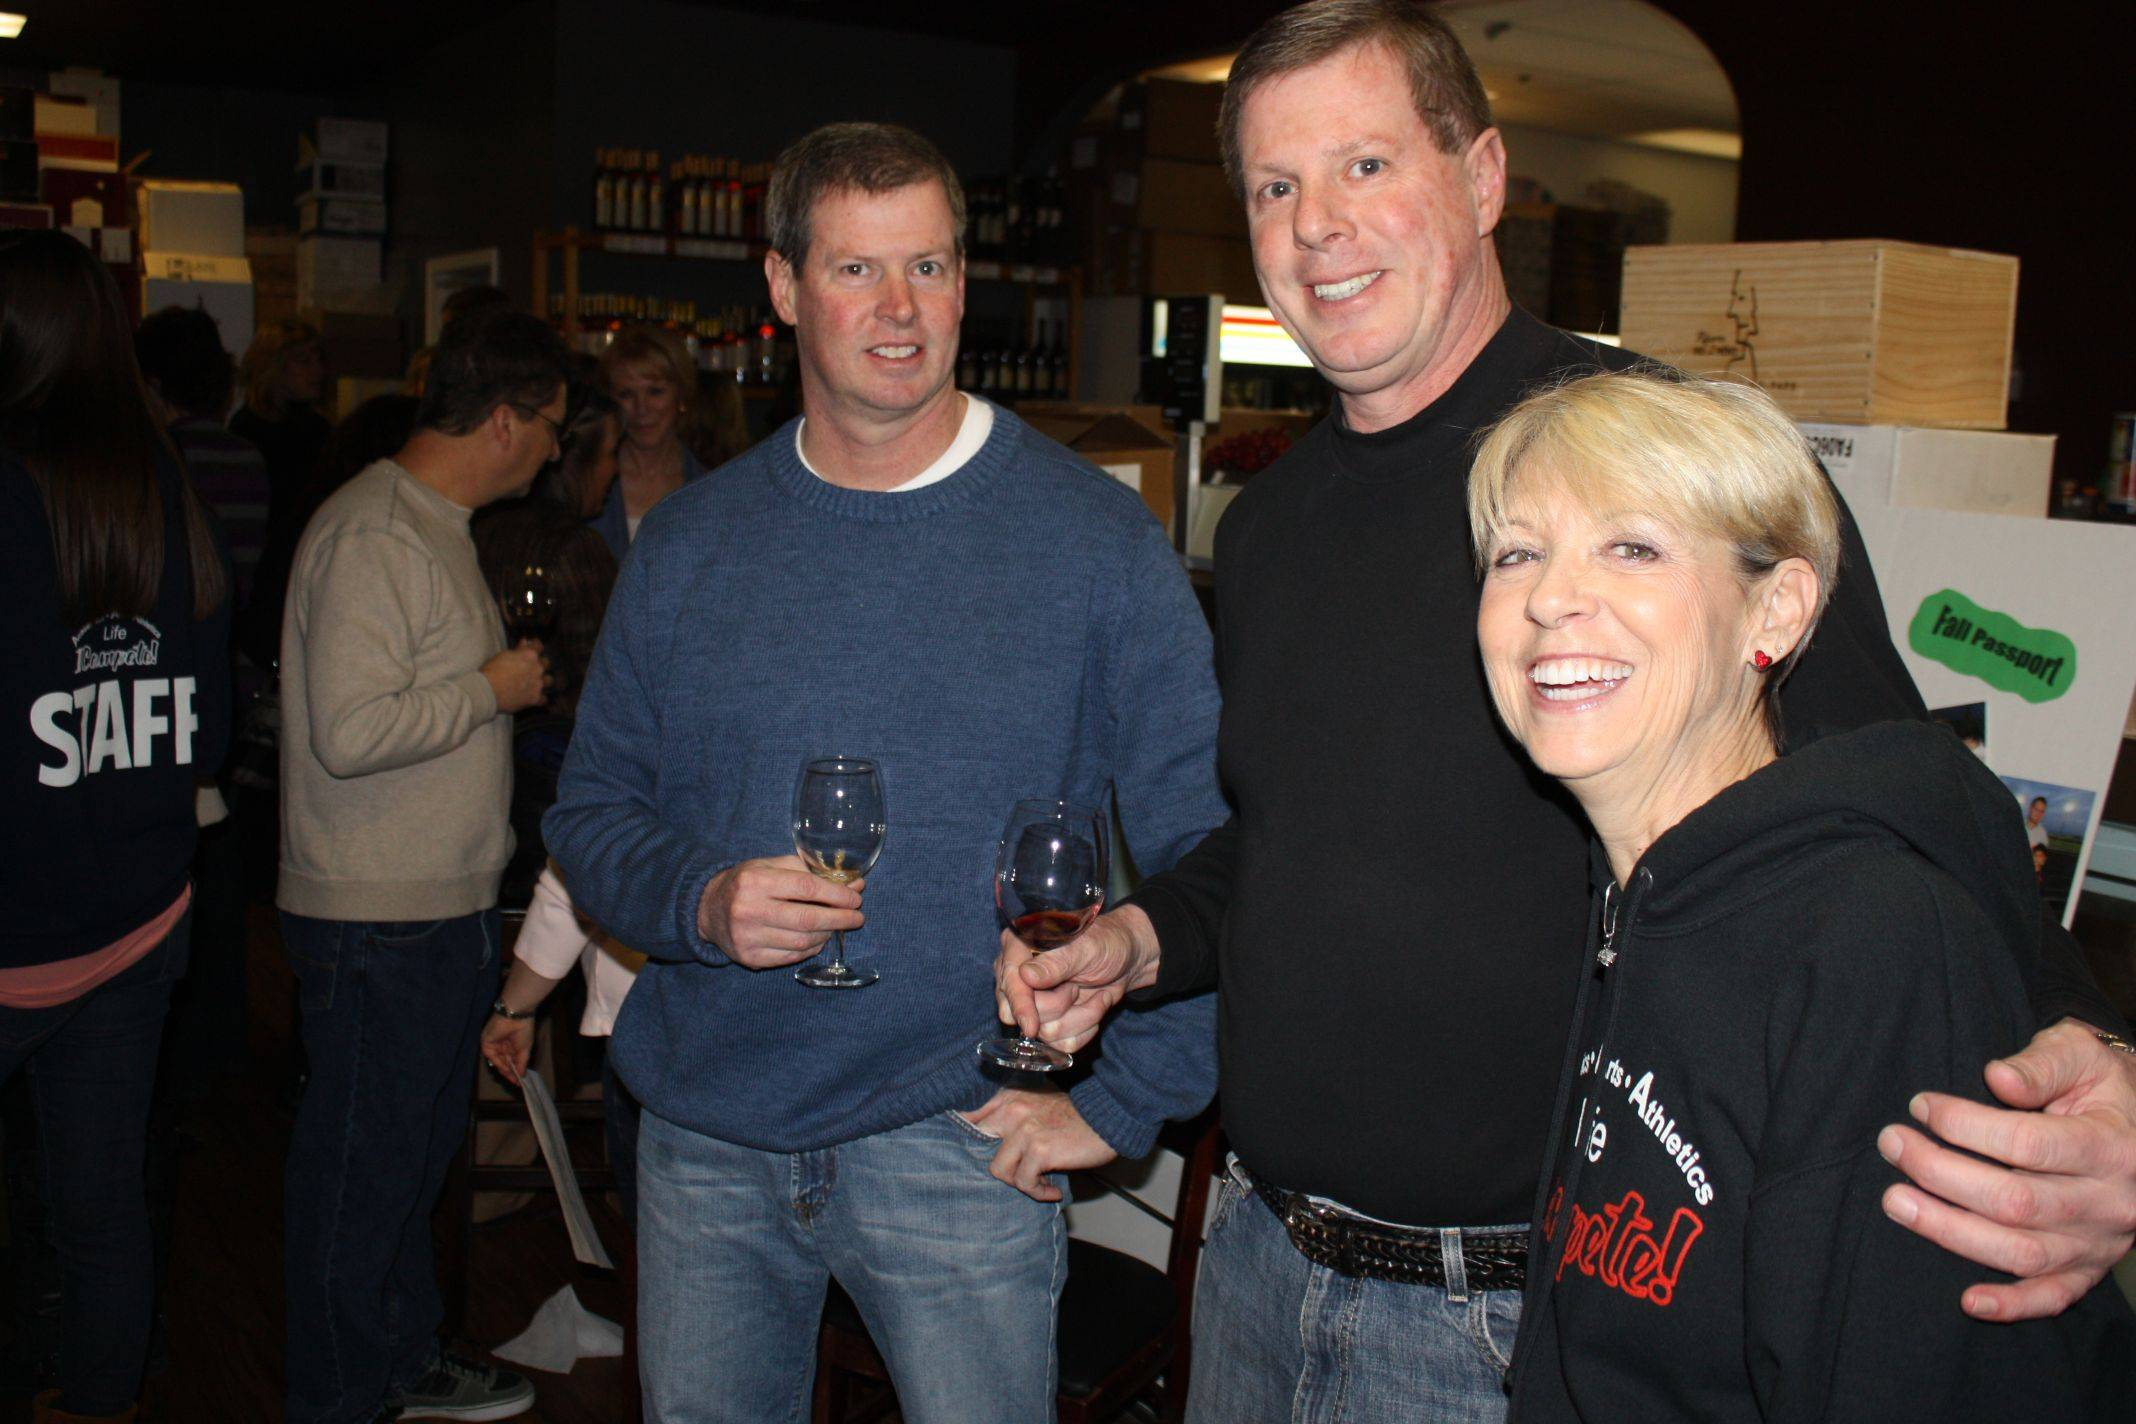 Paul Hass, Bob Hass and Nancy Grybash at the 2012 event.